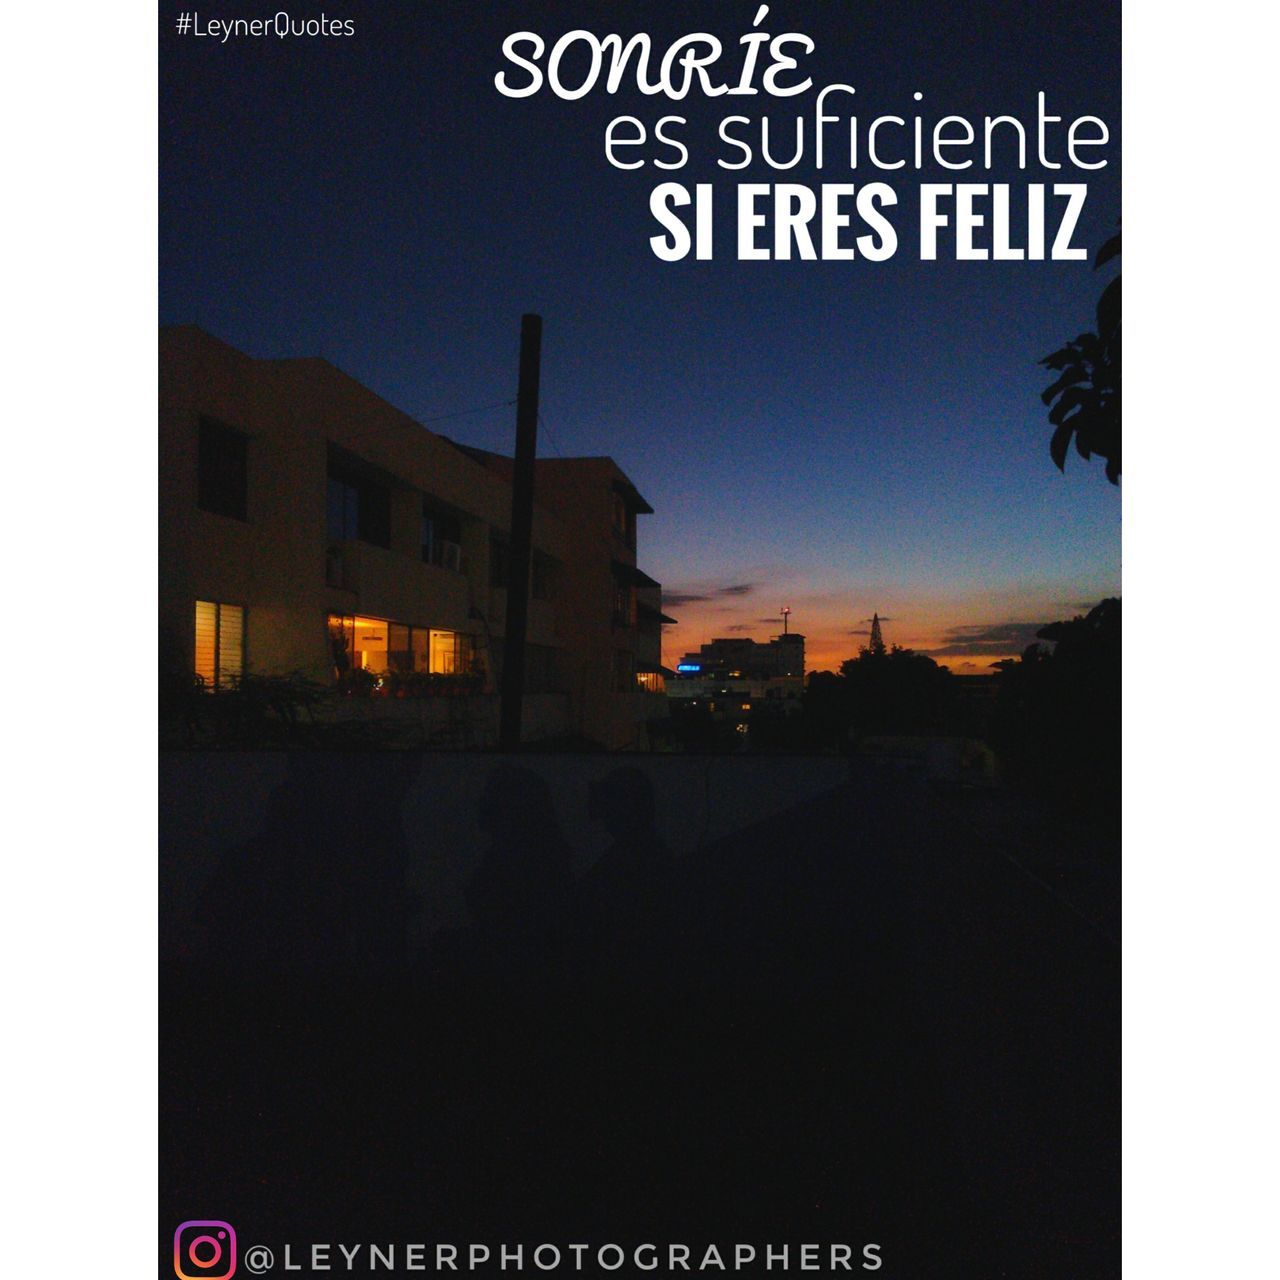 Quotes Sunset City Nonewfriends Goodafternoon Happy Kids Love Santo Domingo Republicadominicana Goodvibes Şūr Photooftheday Silhouette No People Night Sky Outdoors Cityscape First Eyeem Photo